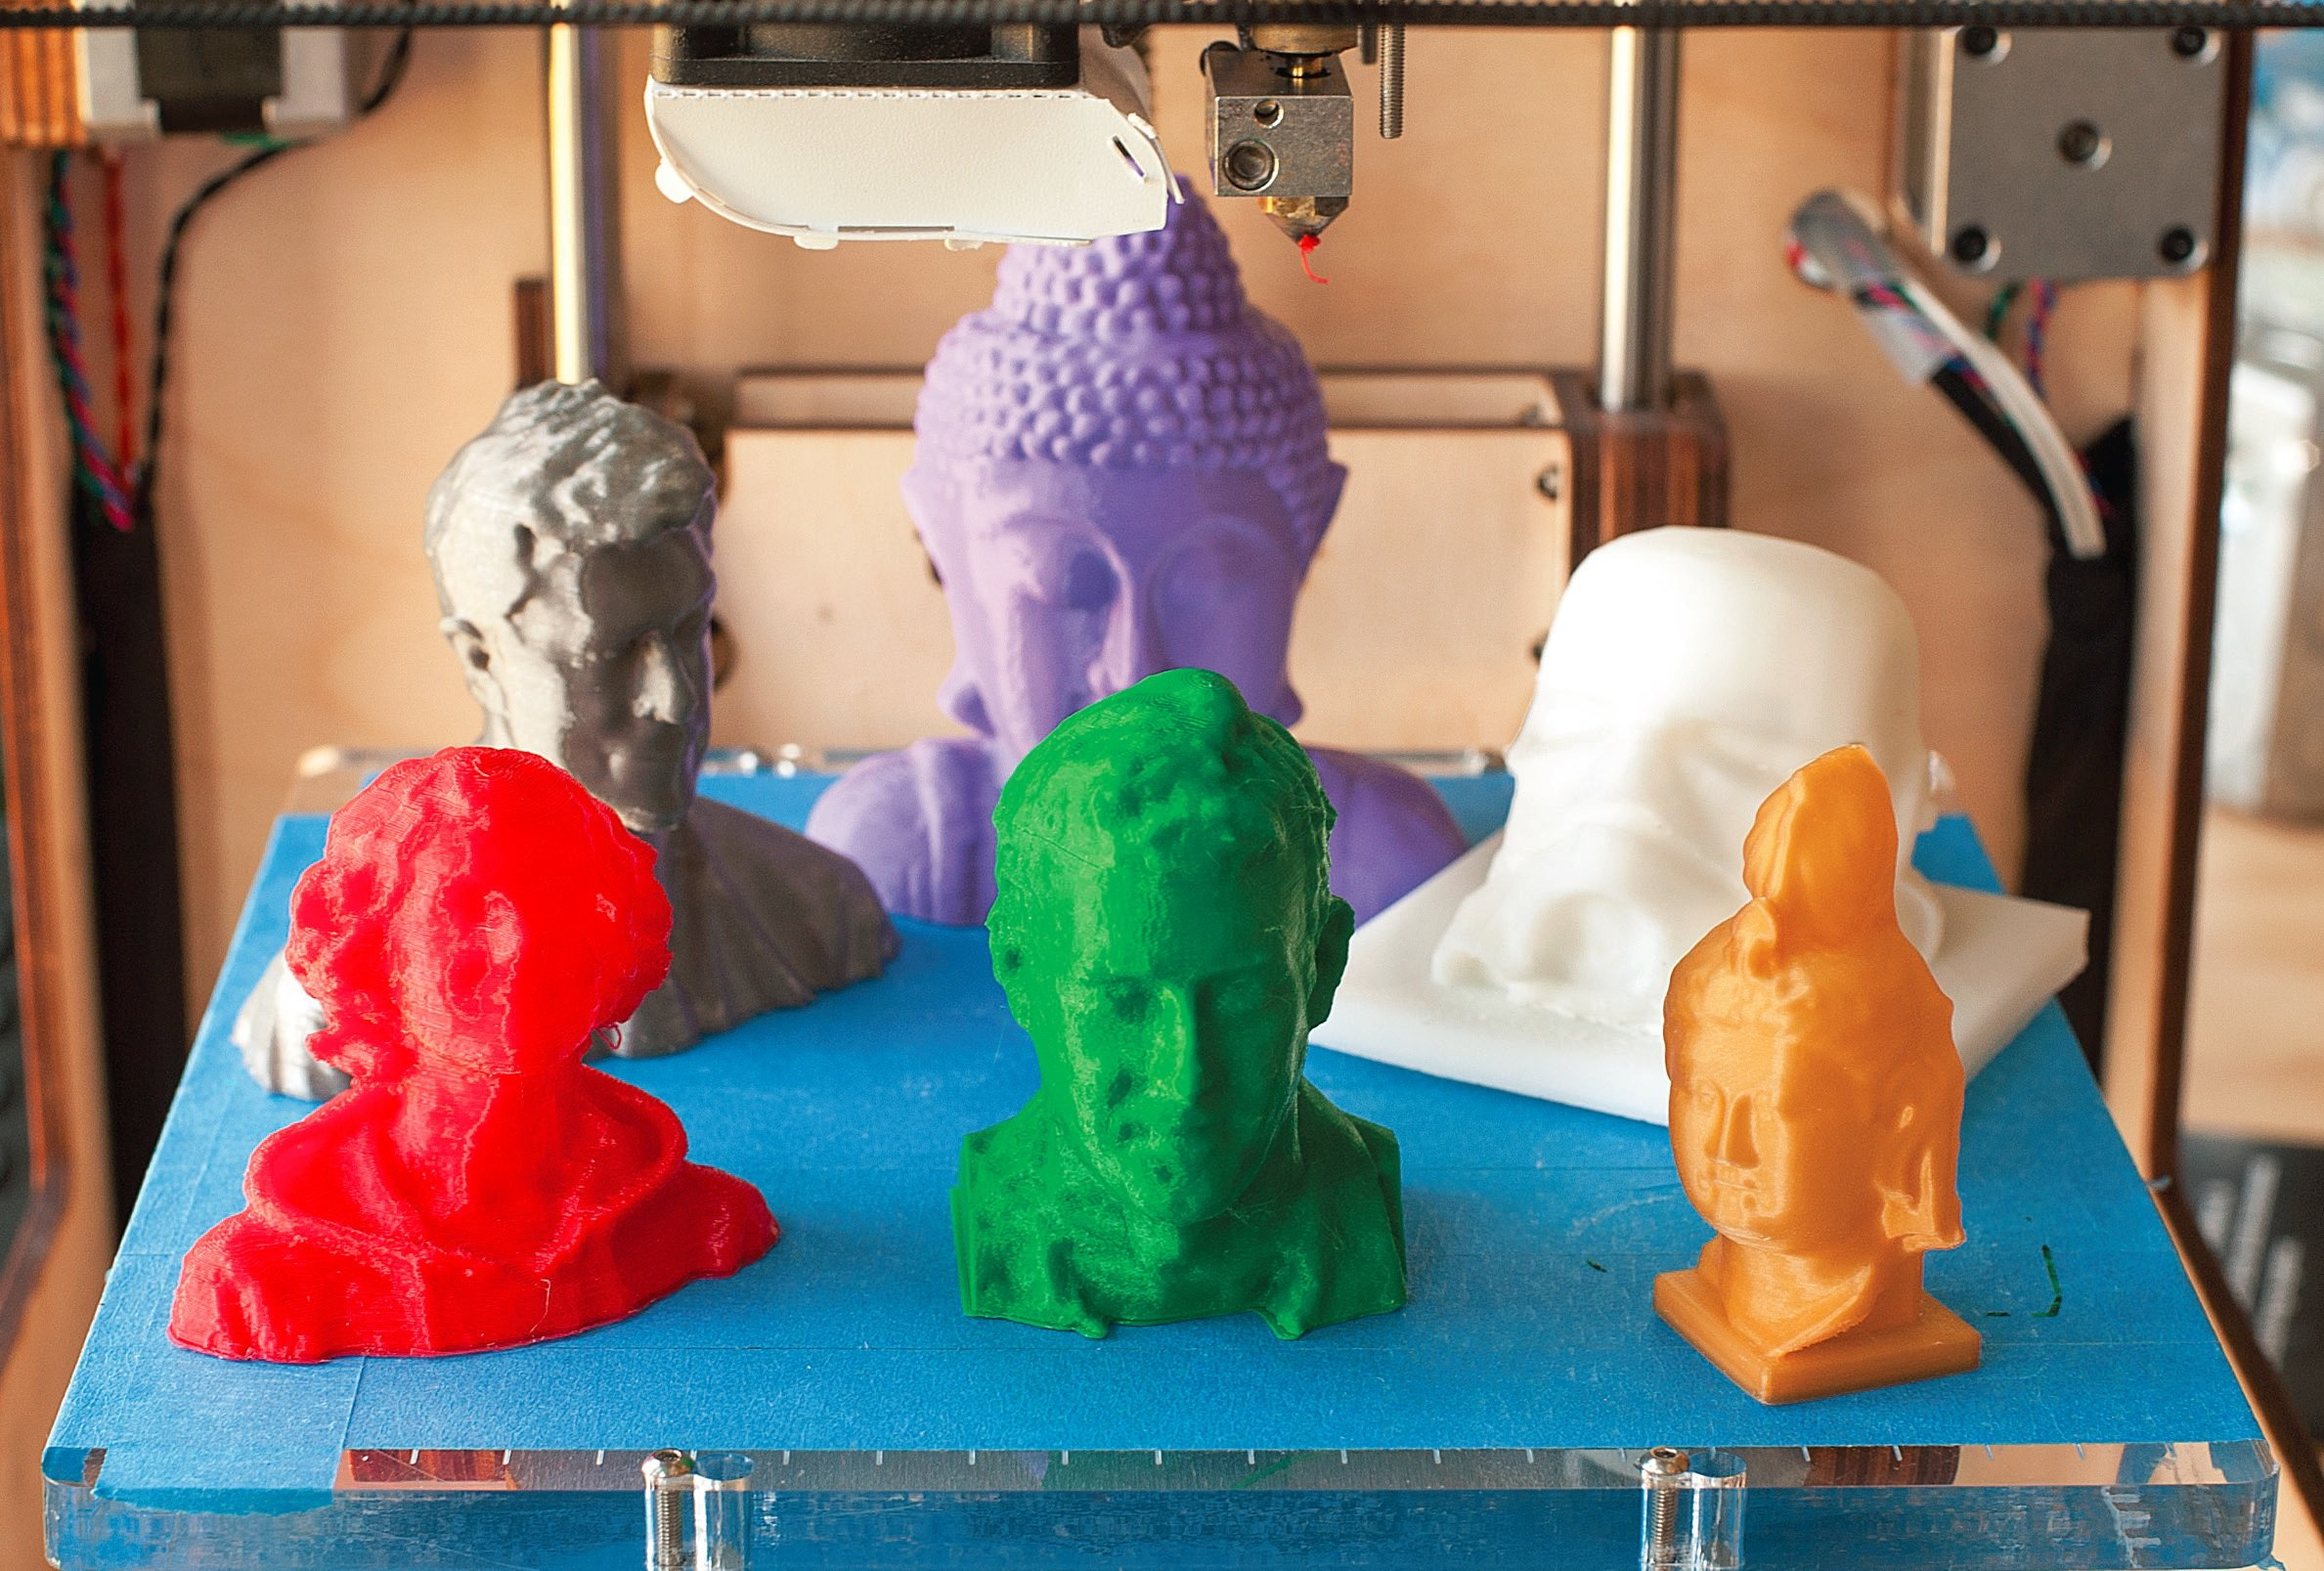 Print a 3D Model of Your Head